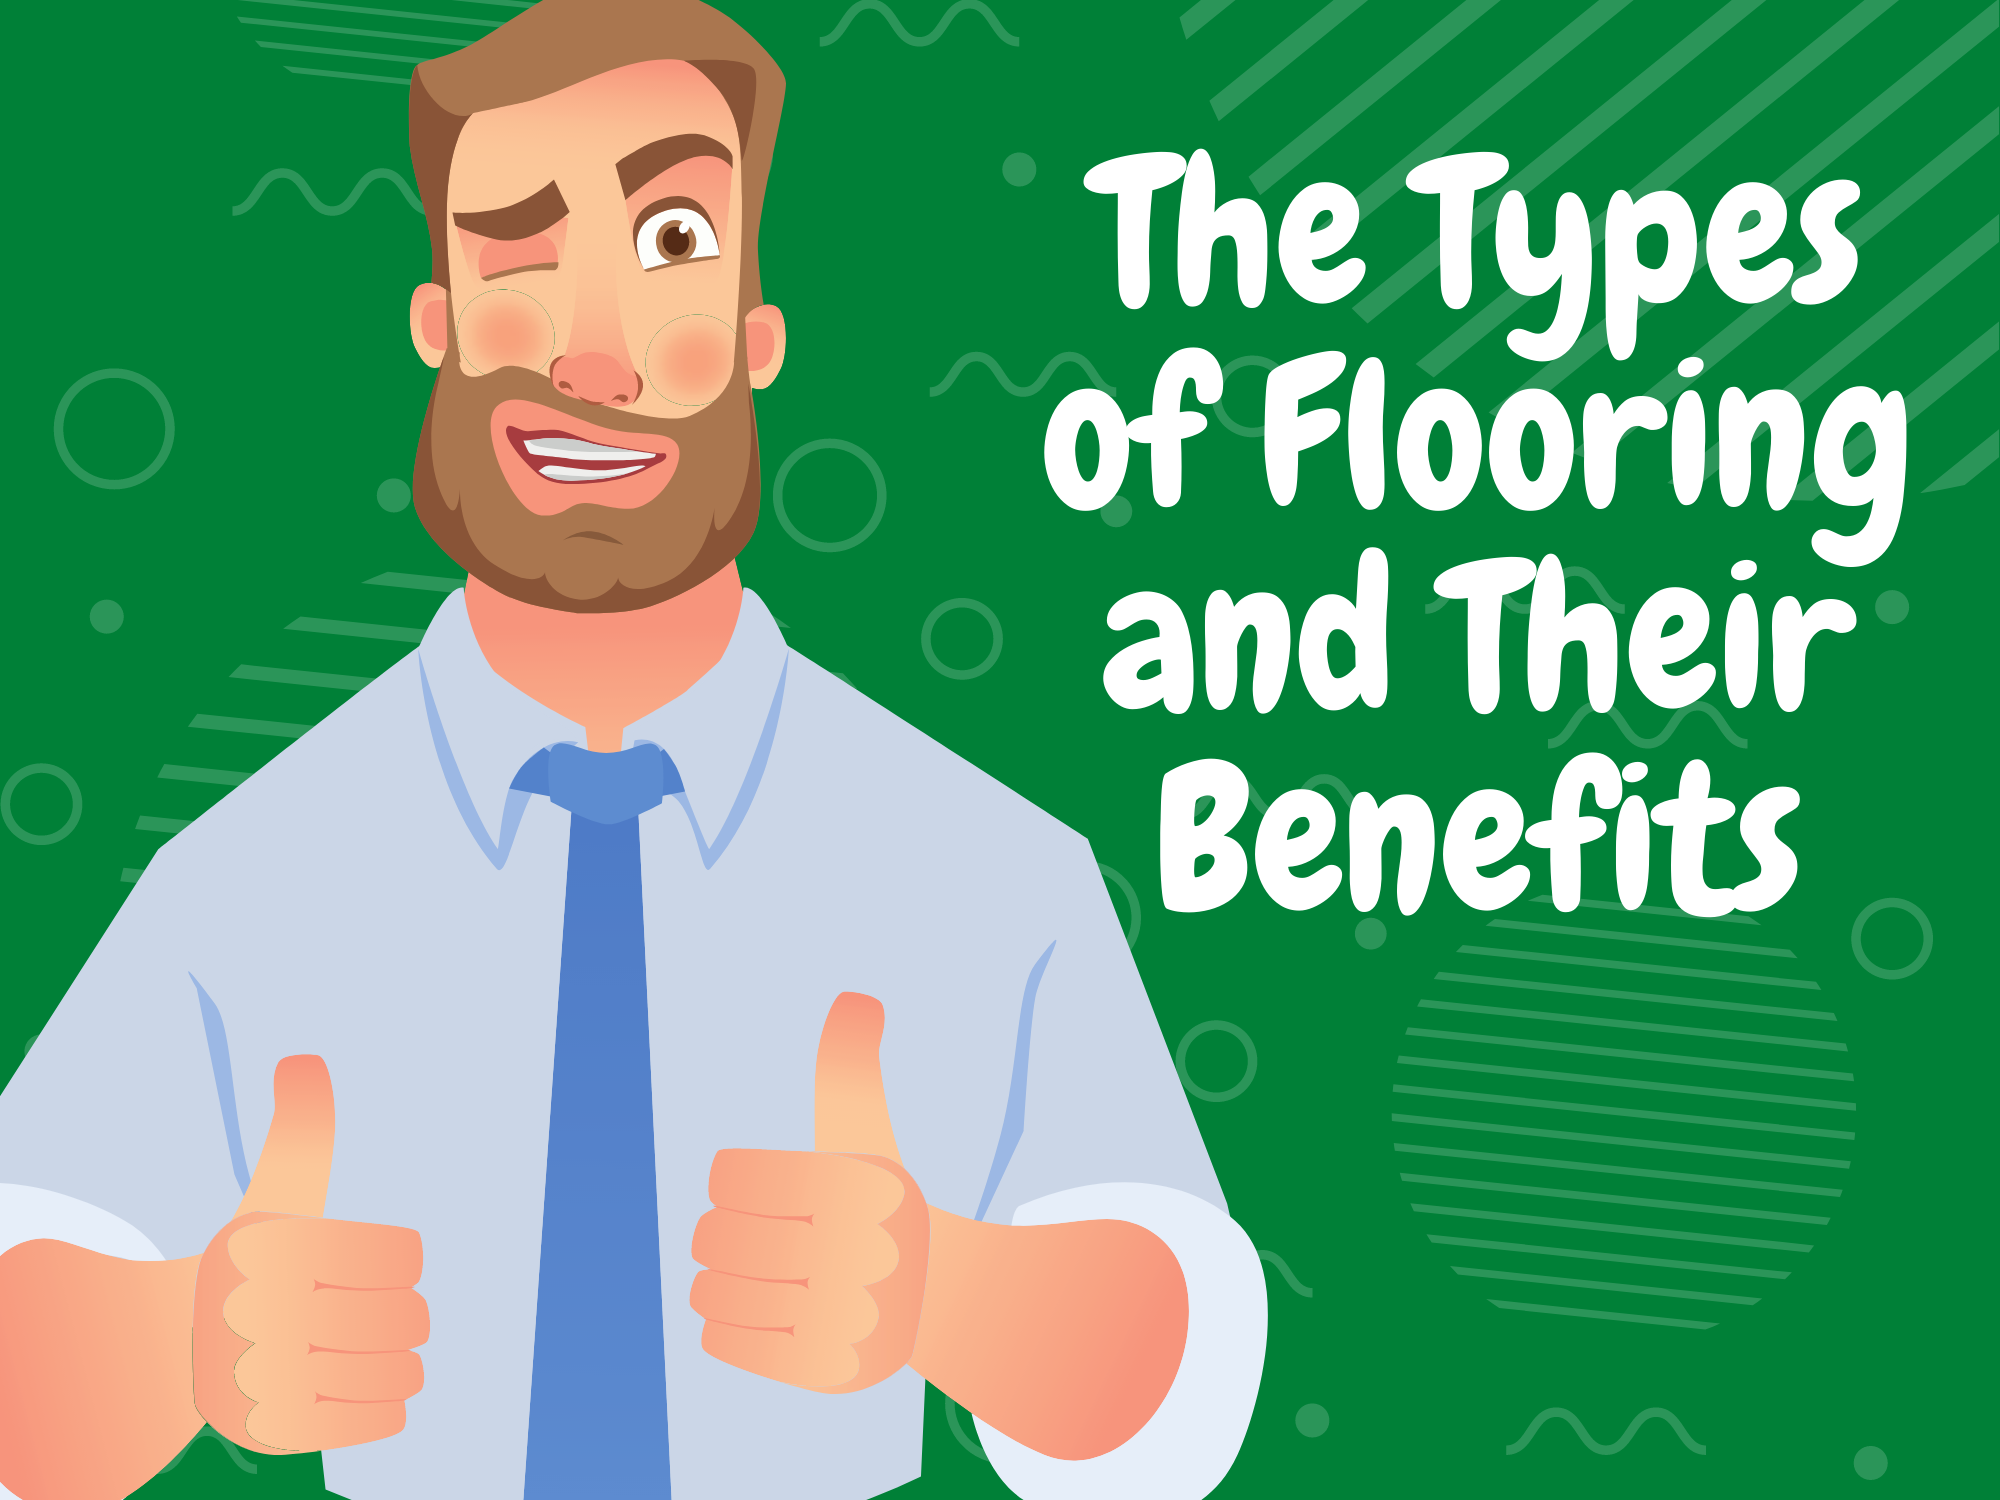 The-Types-of-Flooring-and-Their-Benefits